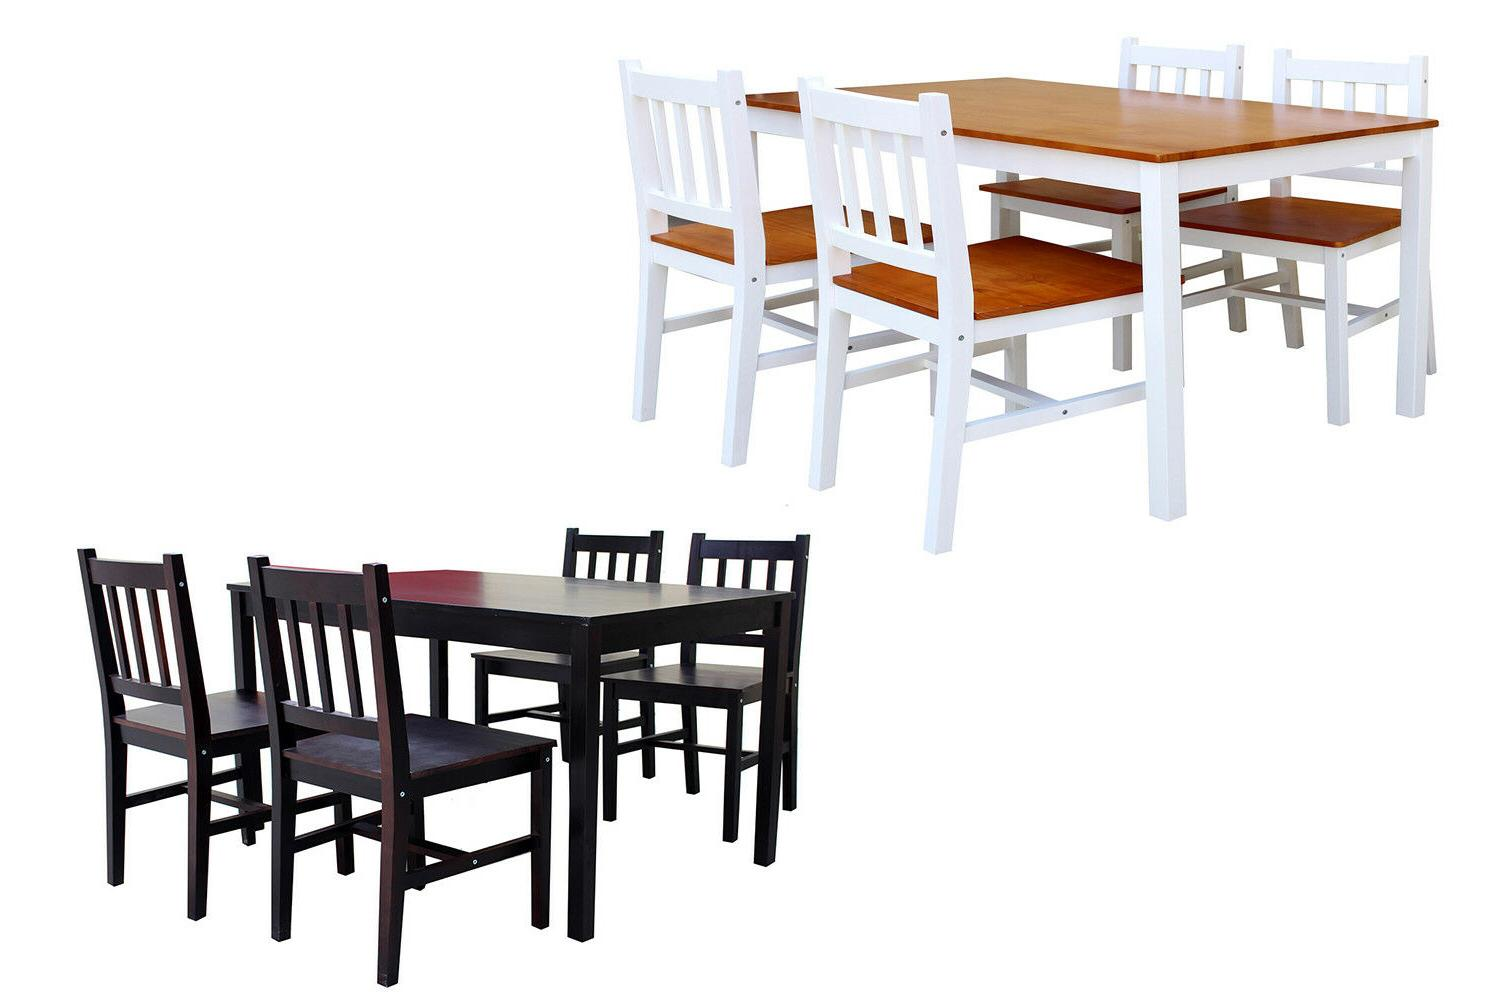 5 Piece Dining Table Set Rectangular Kitchen Restaurant Furn